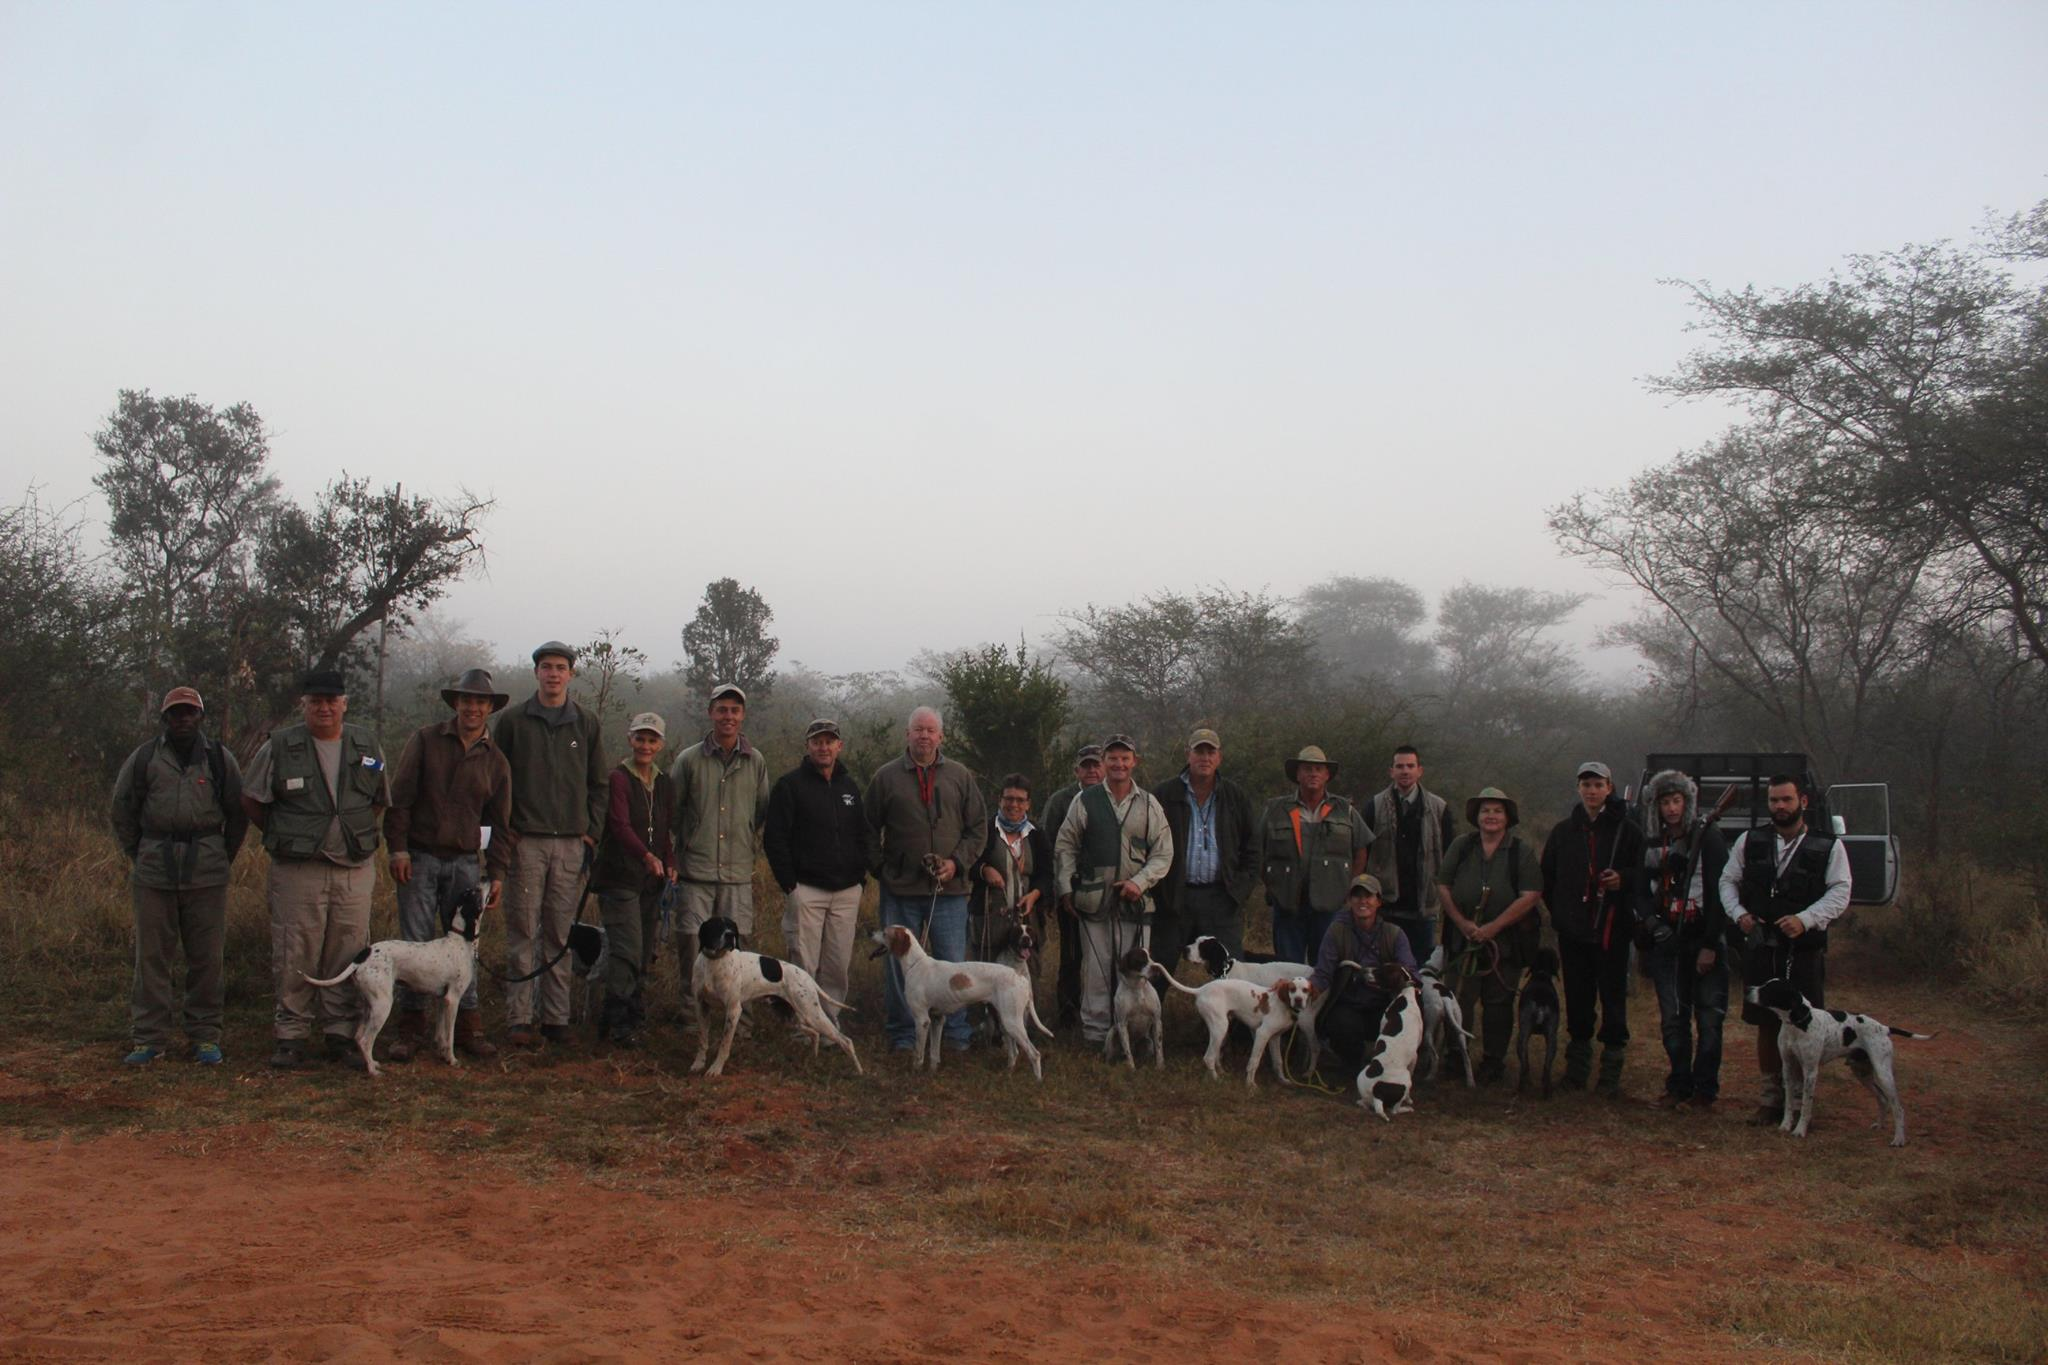 10th Zimbabwe National Pointer Dog Trials